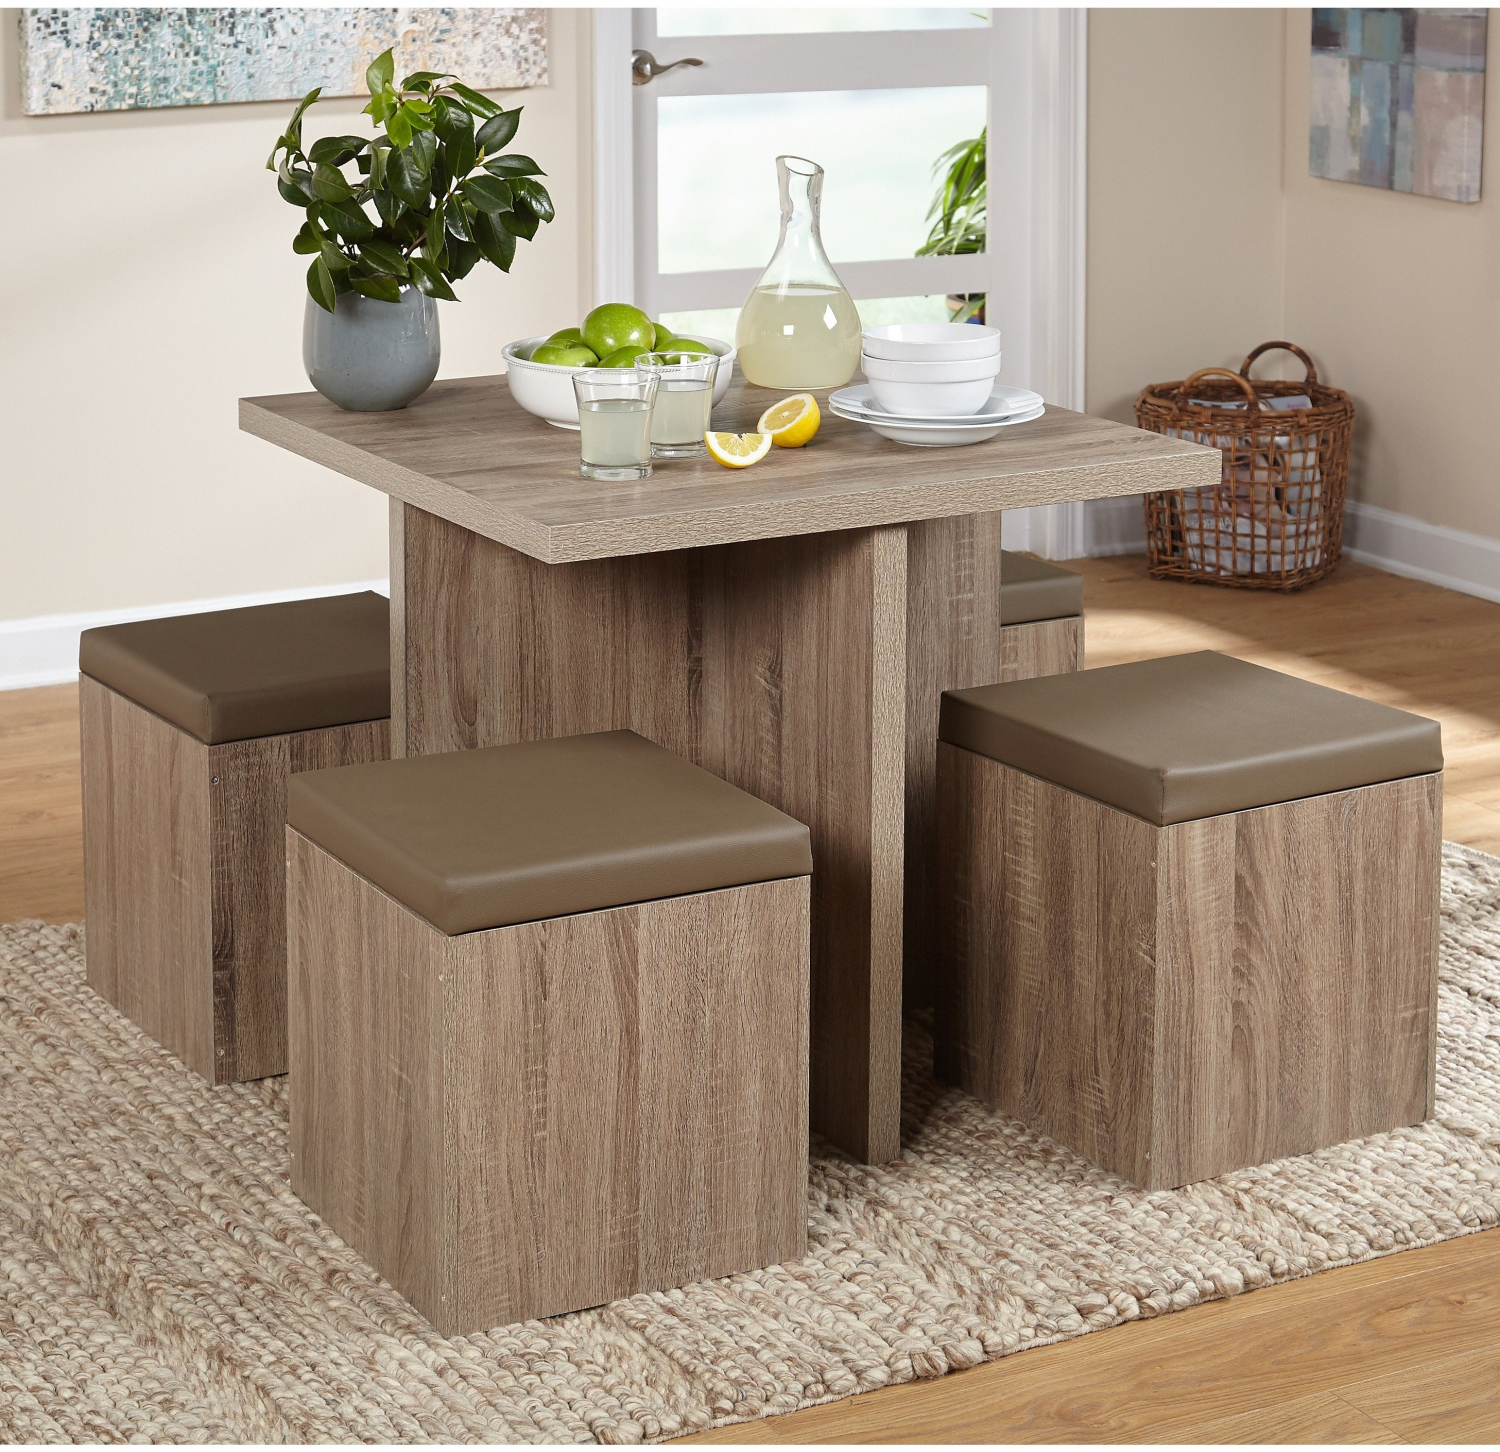 . Details about Simple Living Baxter Dining Set 5 Piece Space Saving Ottoman  Storage  Taupe